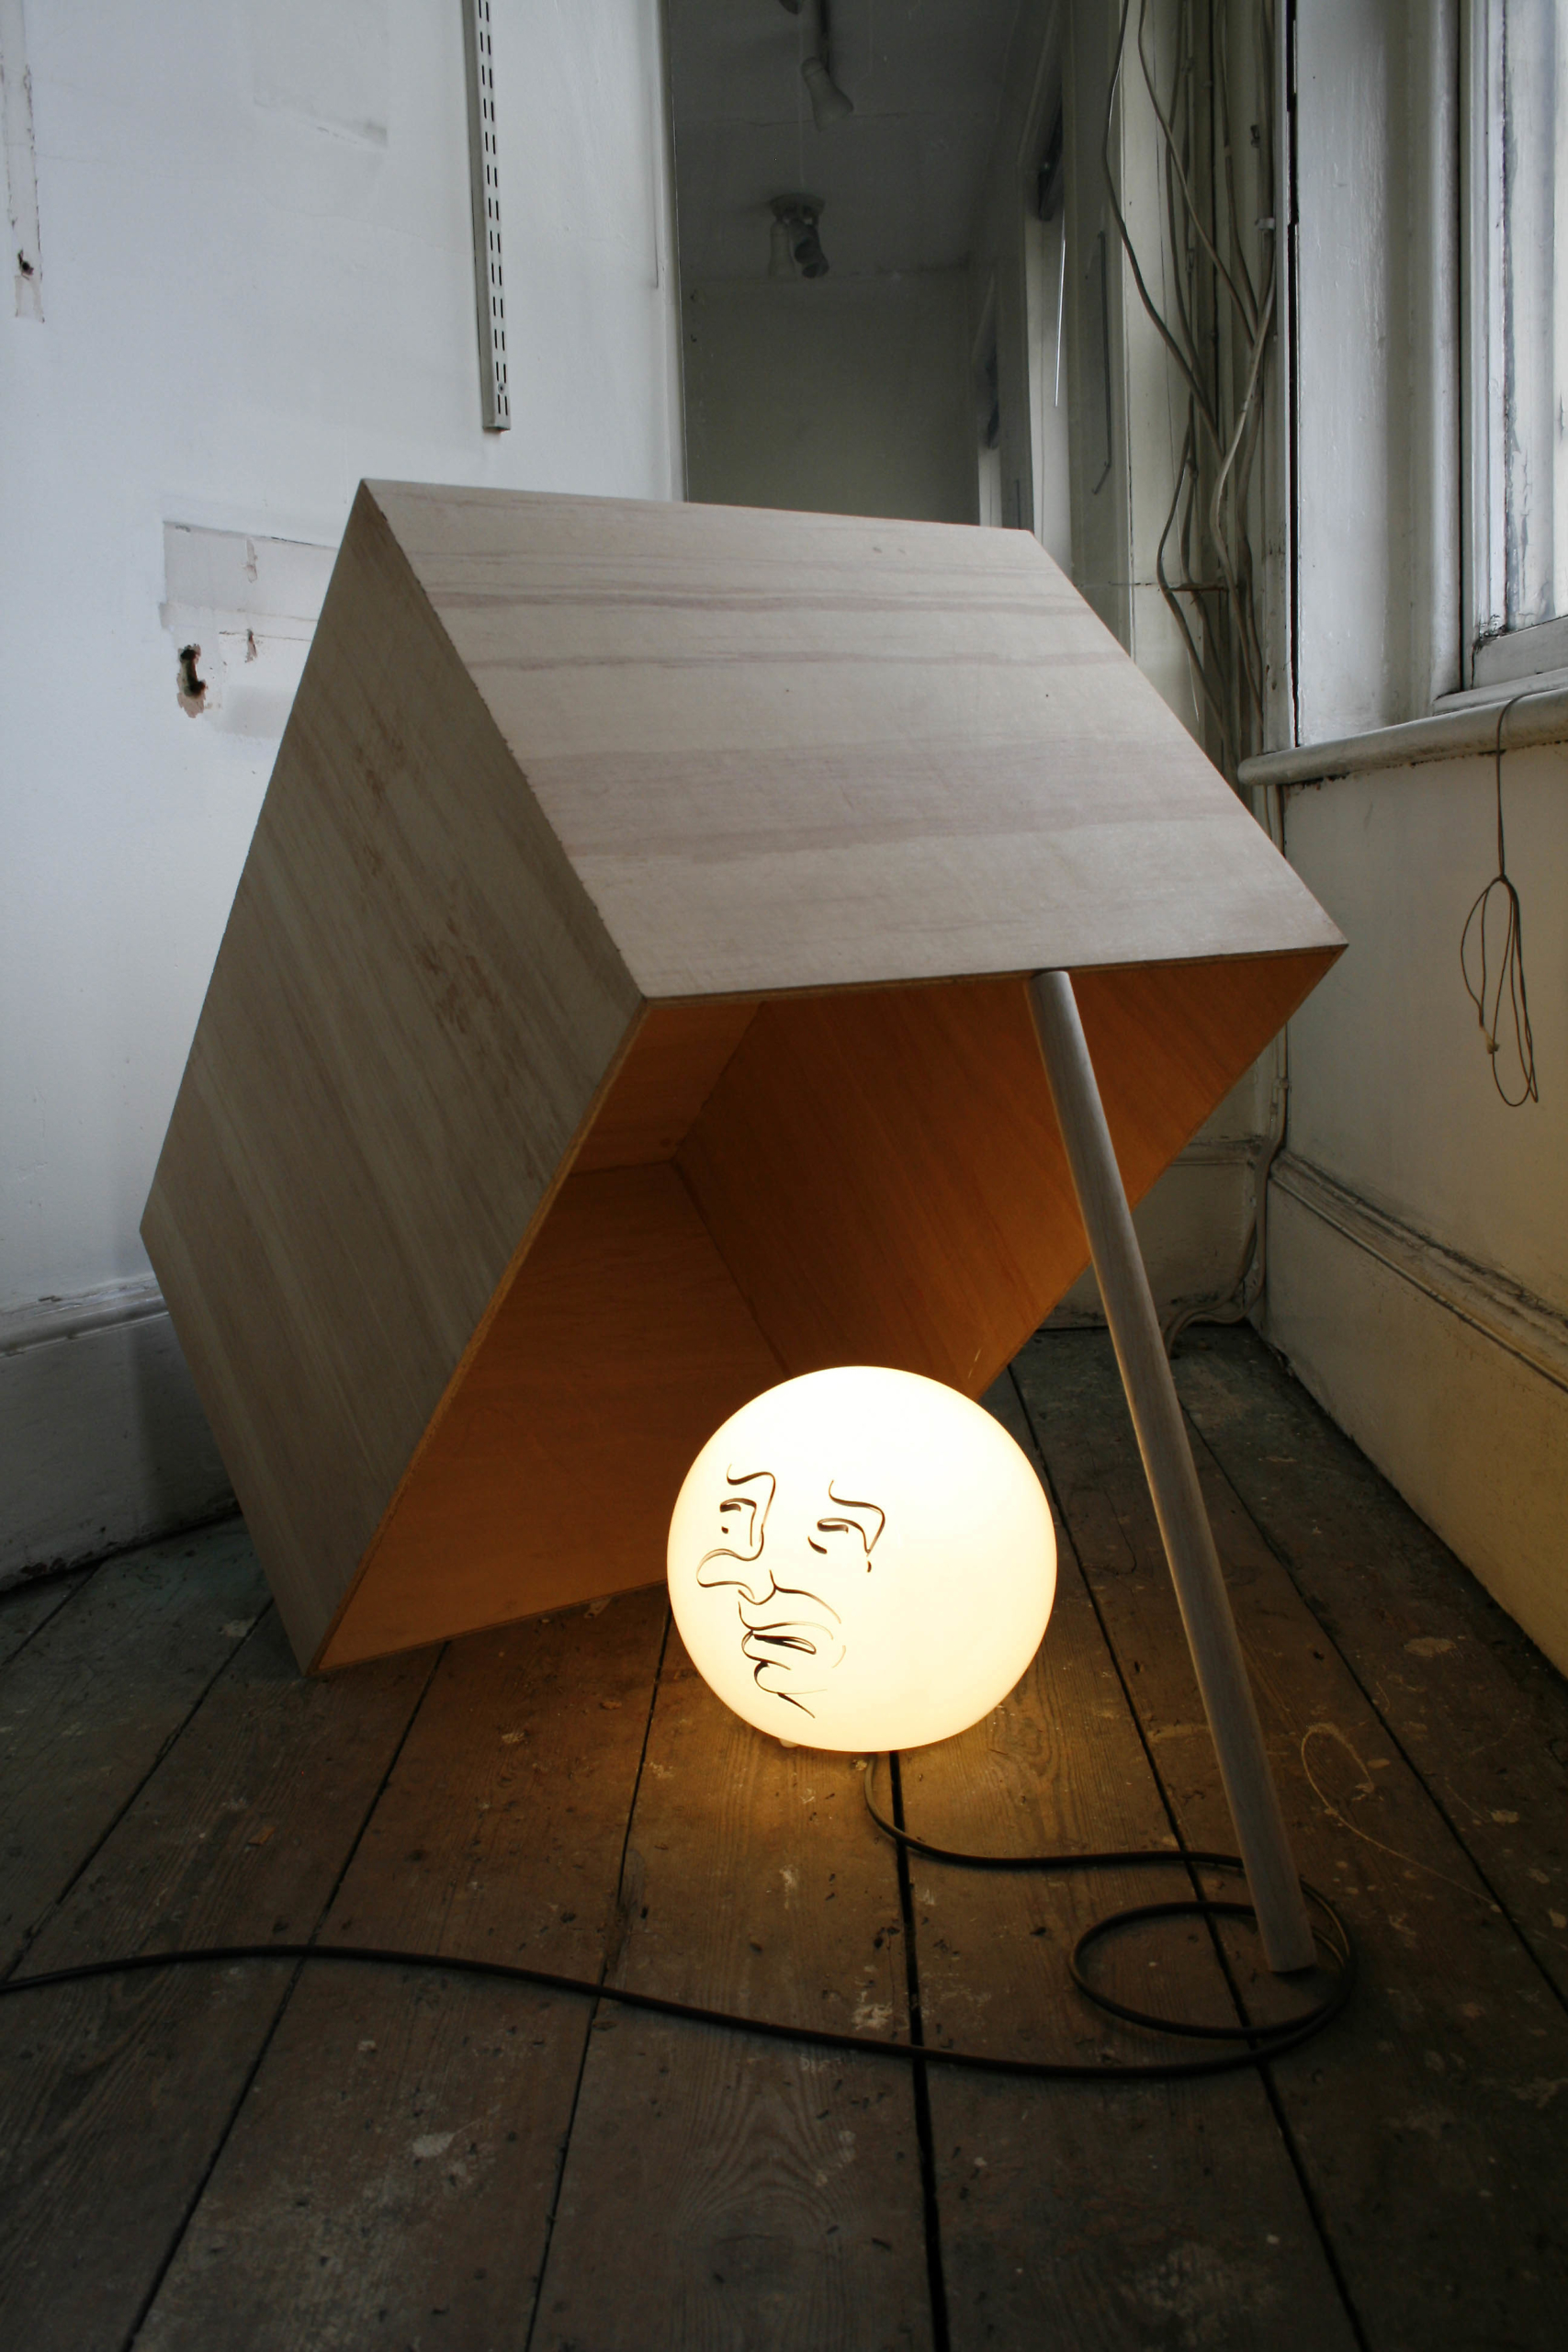 Sam Porritt, Looking For Trouble, 2009. Glass lamp, marker pen, plywood. 75 x 100 x 50 cm.